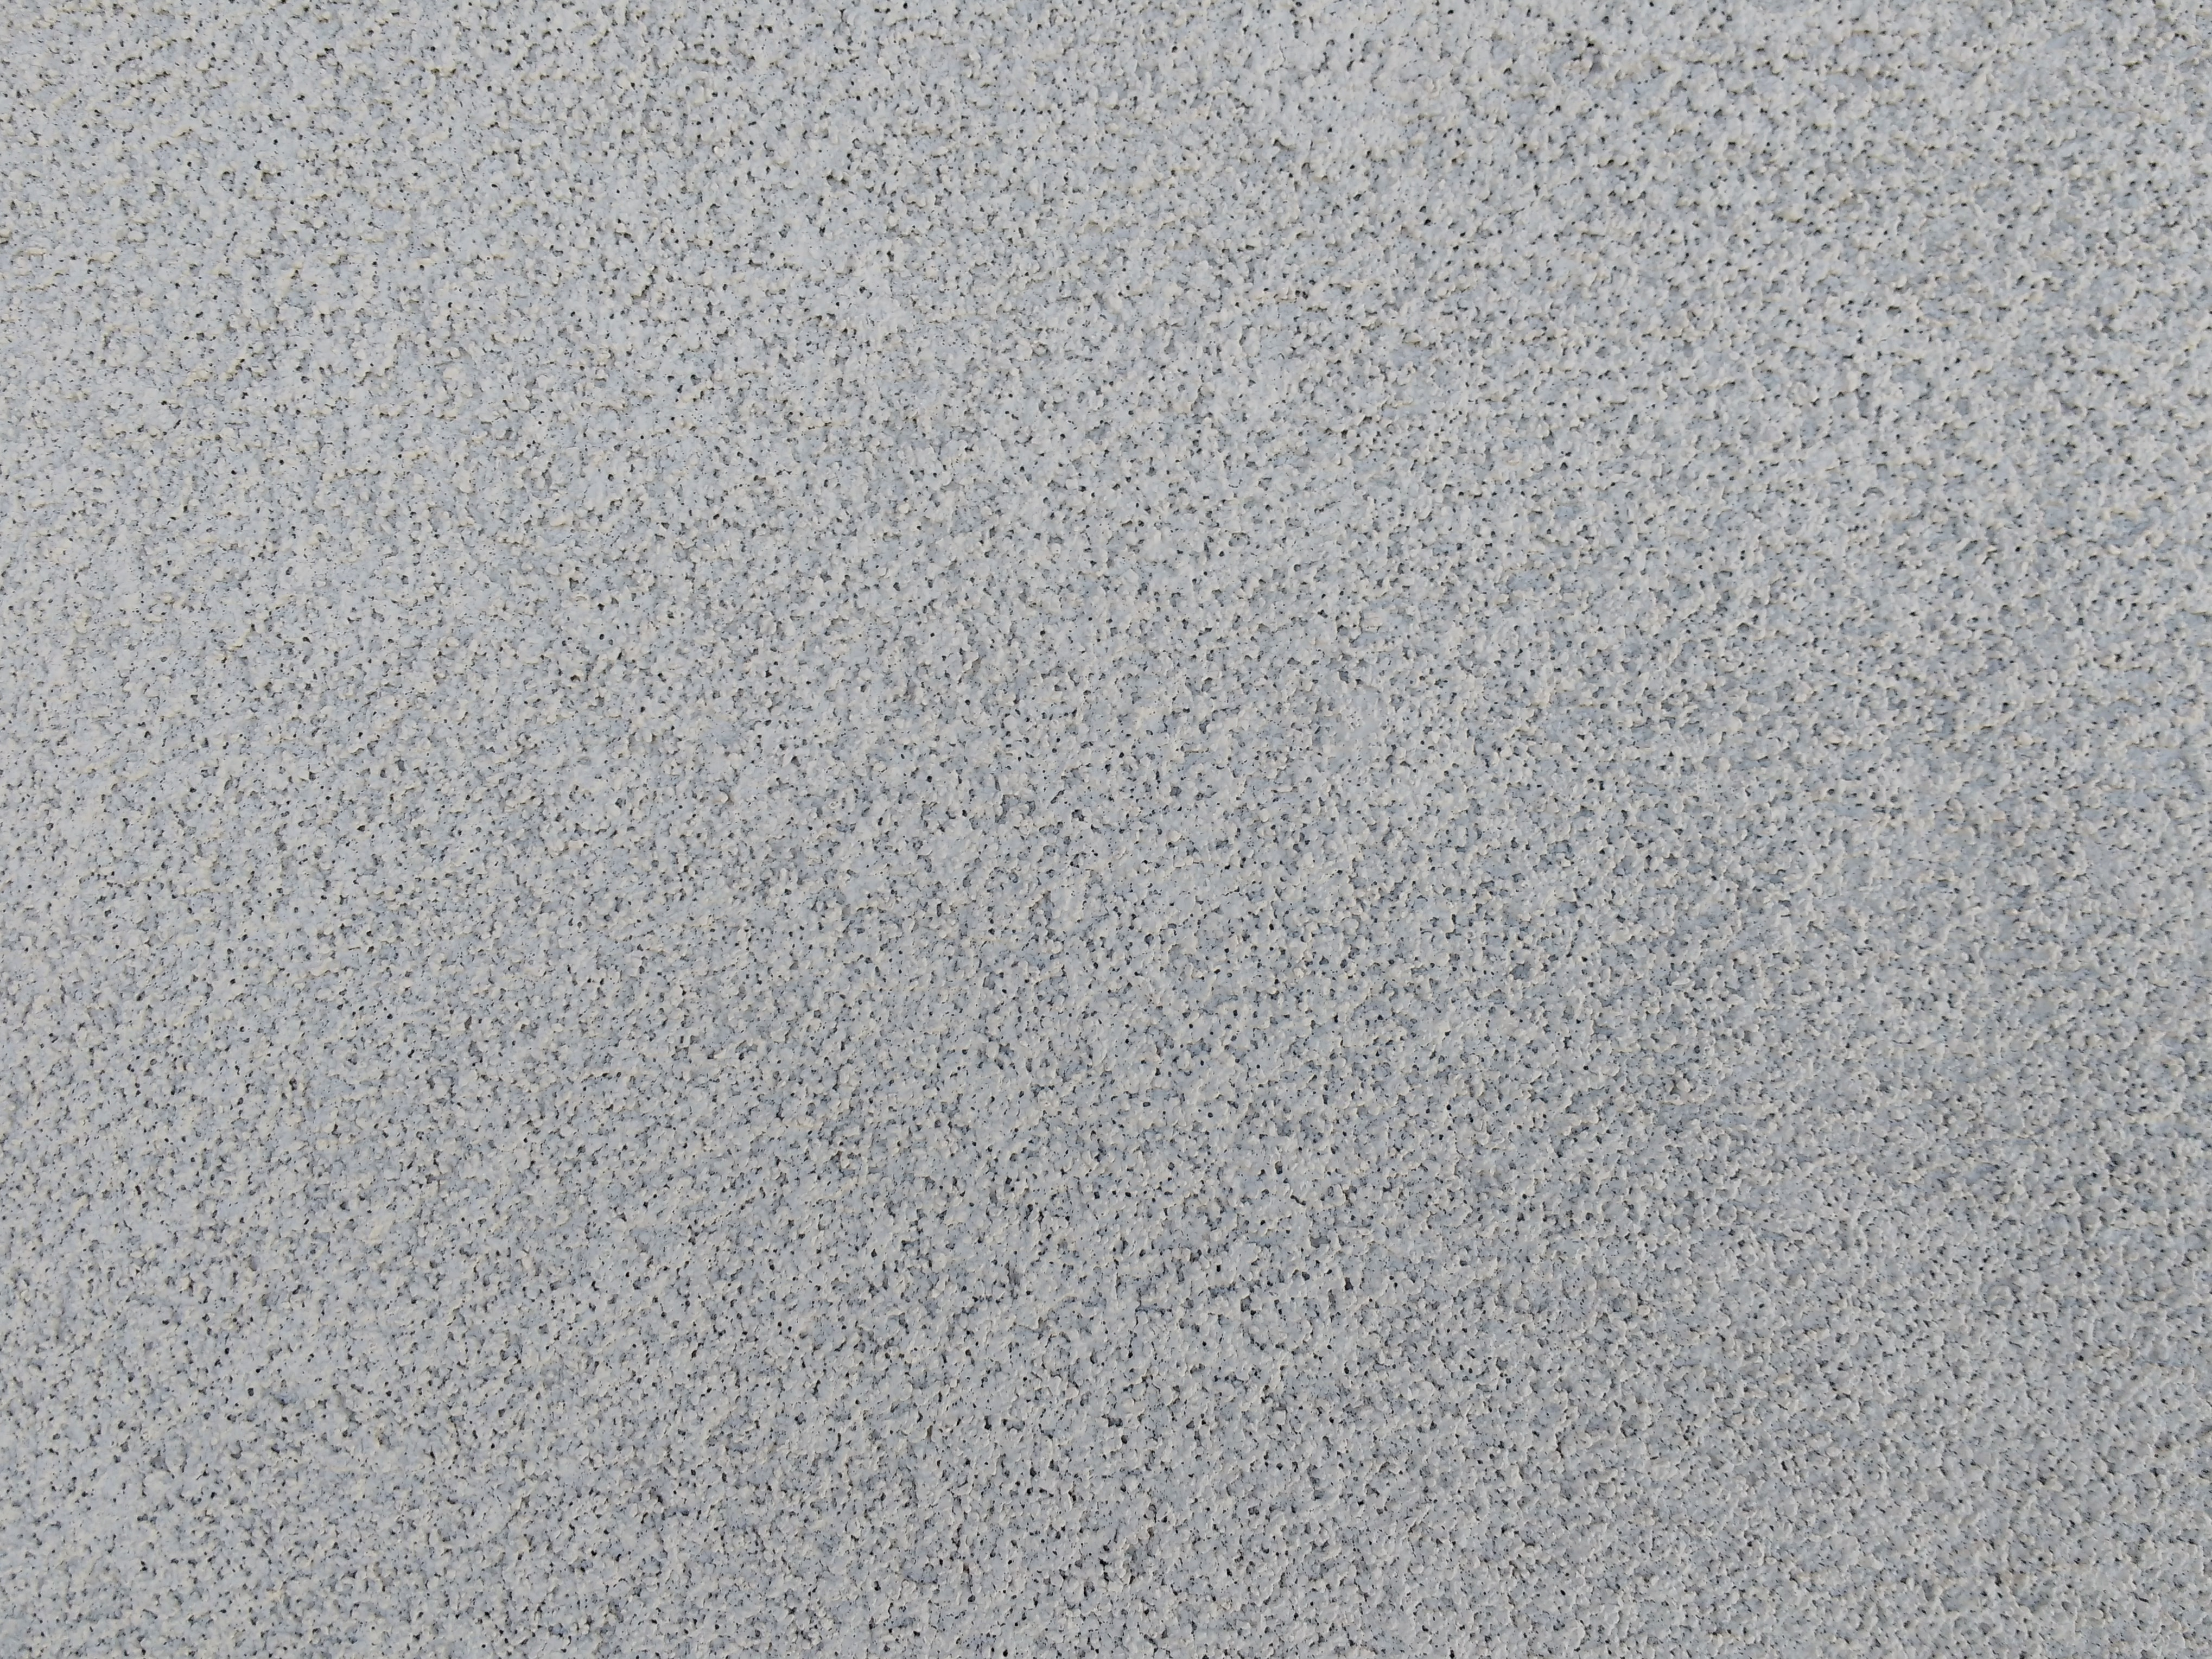 free picture  cement  concrete  texture  abstract  pattern